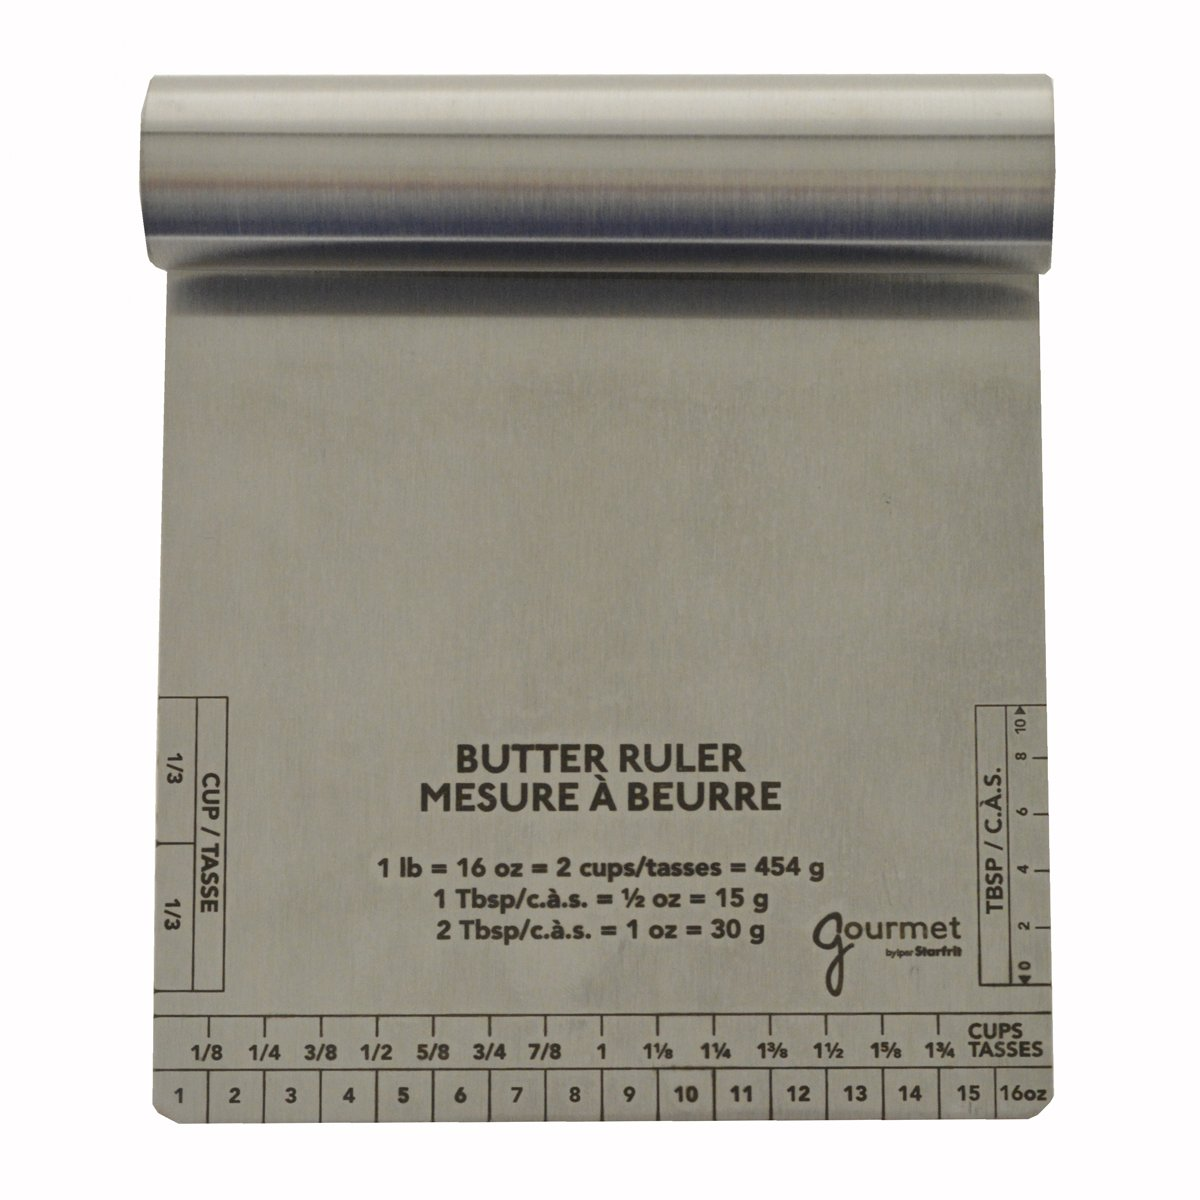 Gourmet by Starfrit 803485 Butter Measure and Scraper, Silver 080485-006-0000